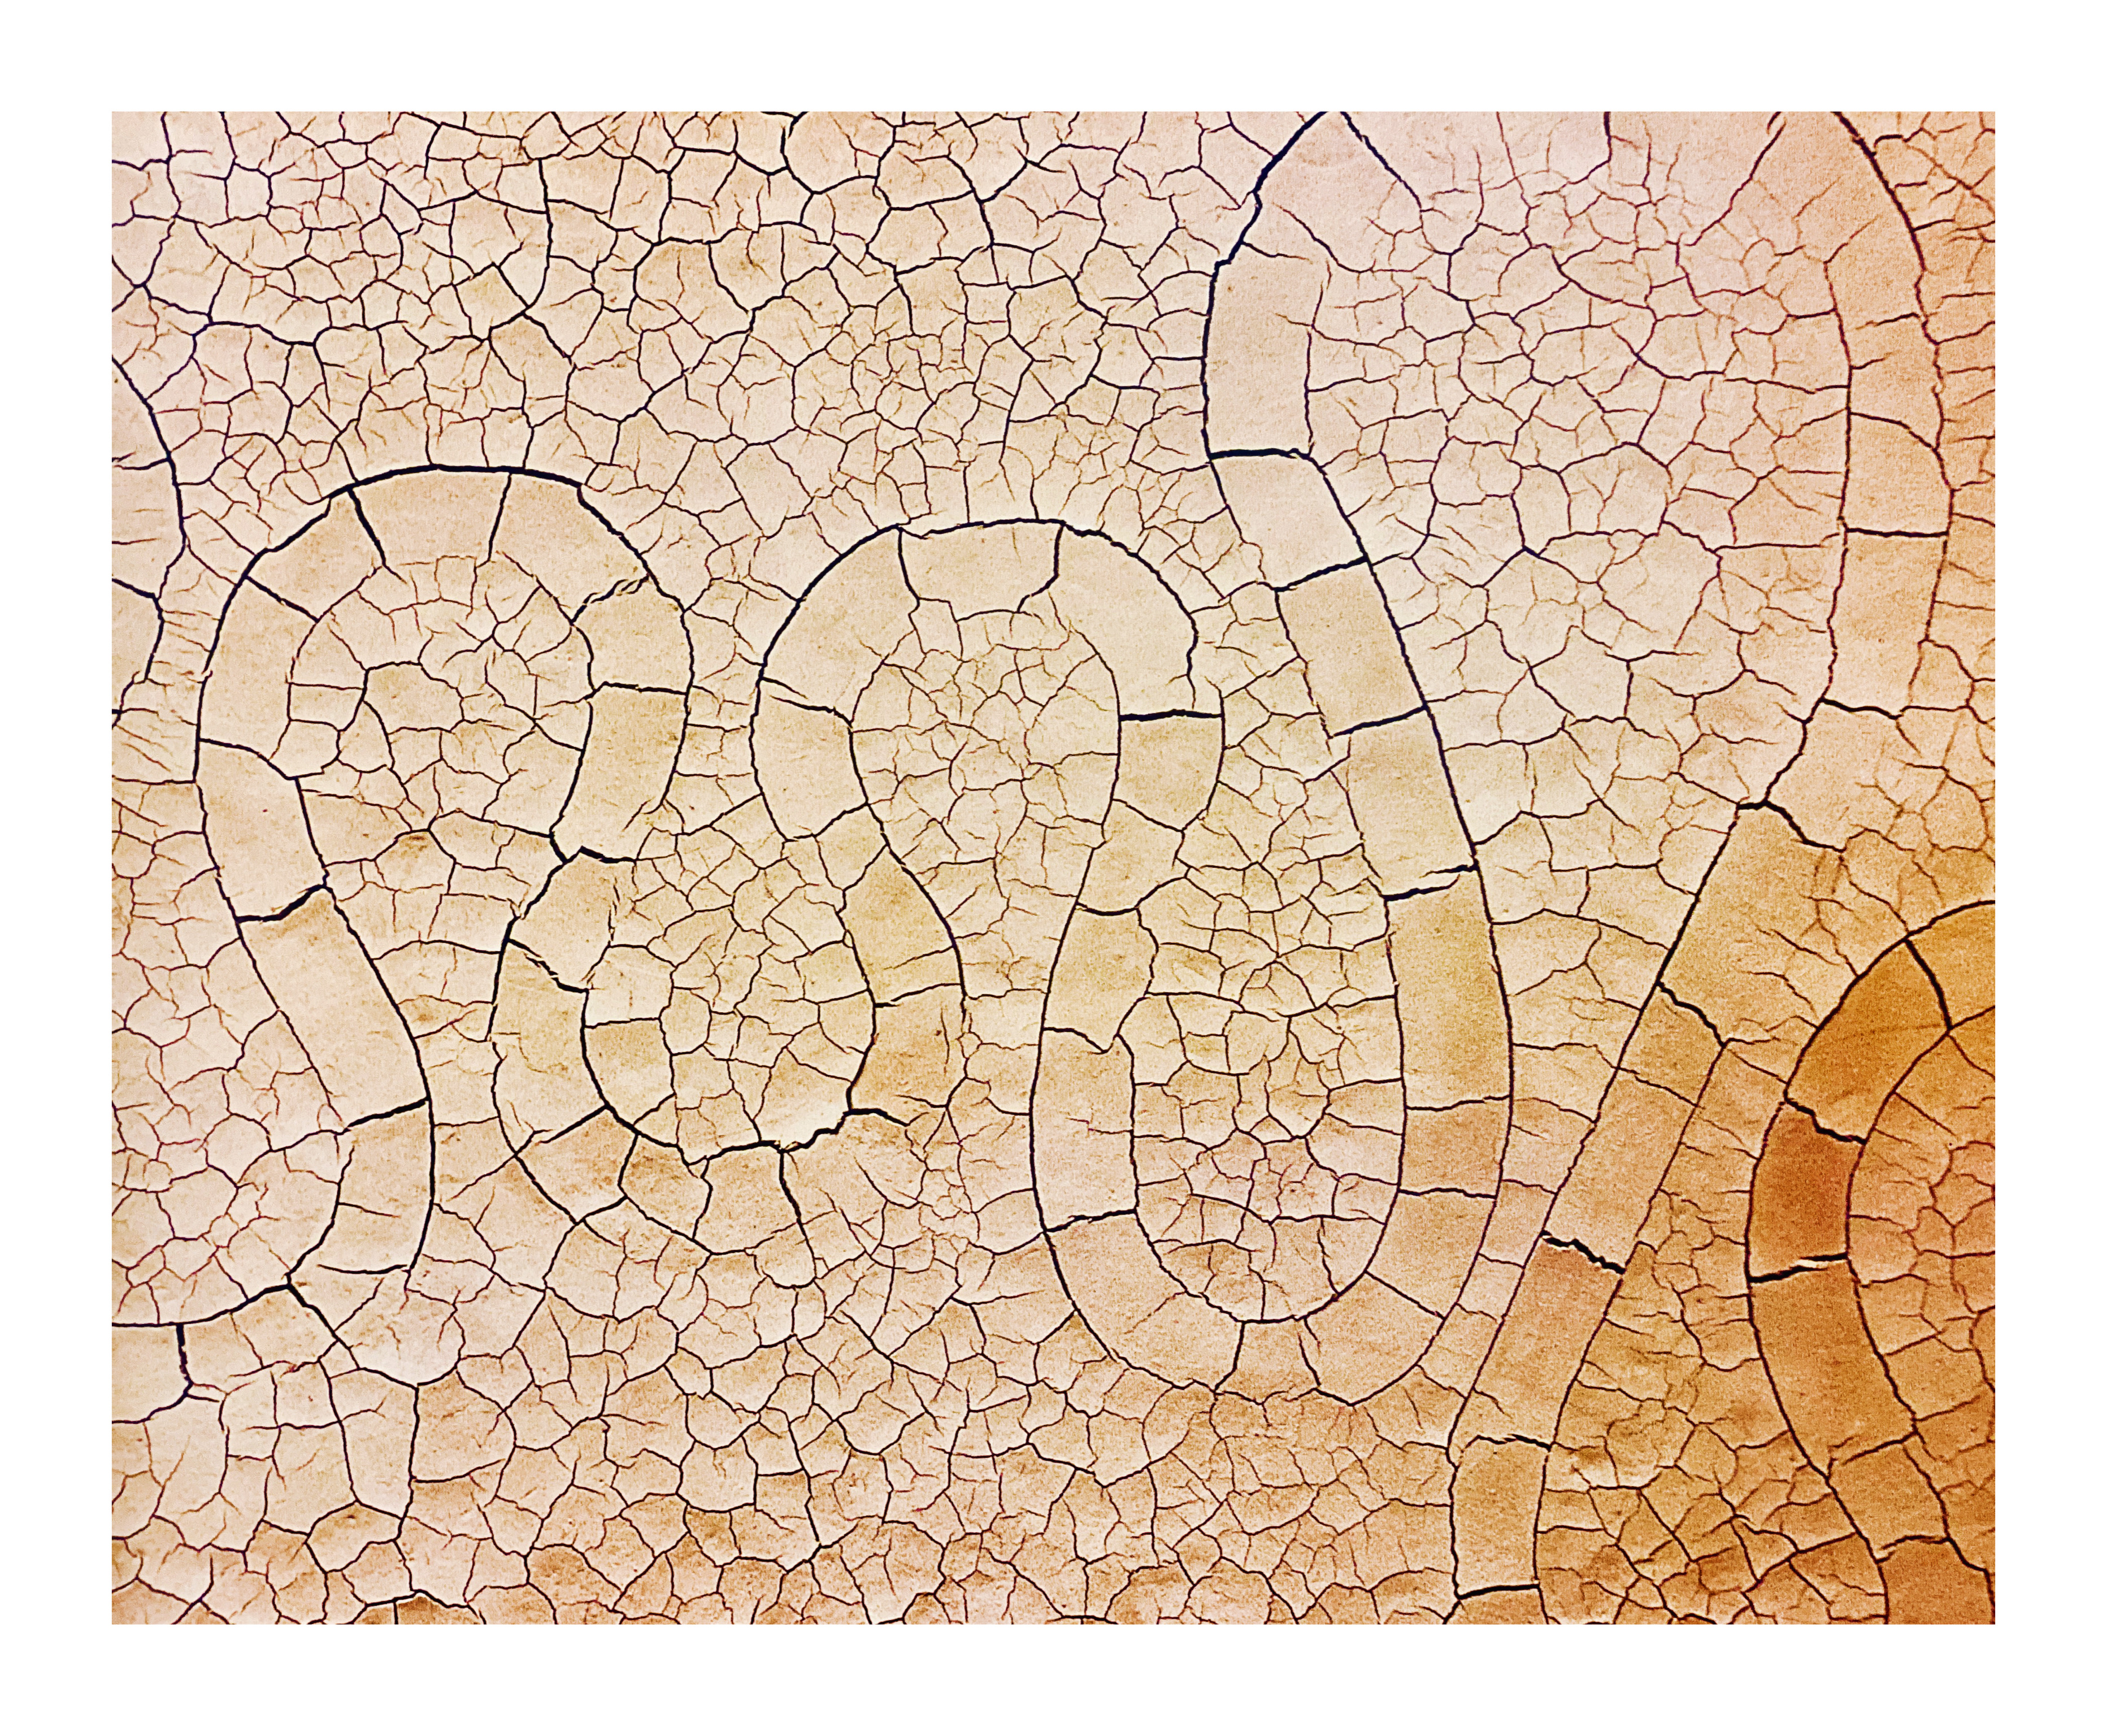 Clay - Andy Goldsworthy2